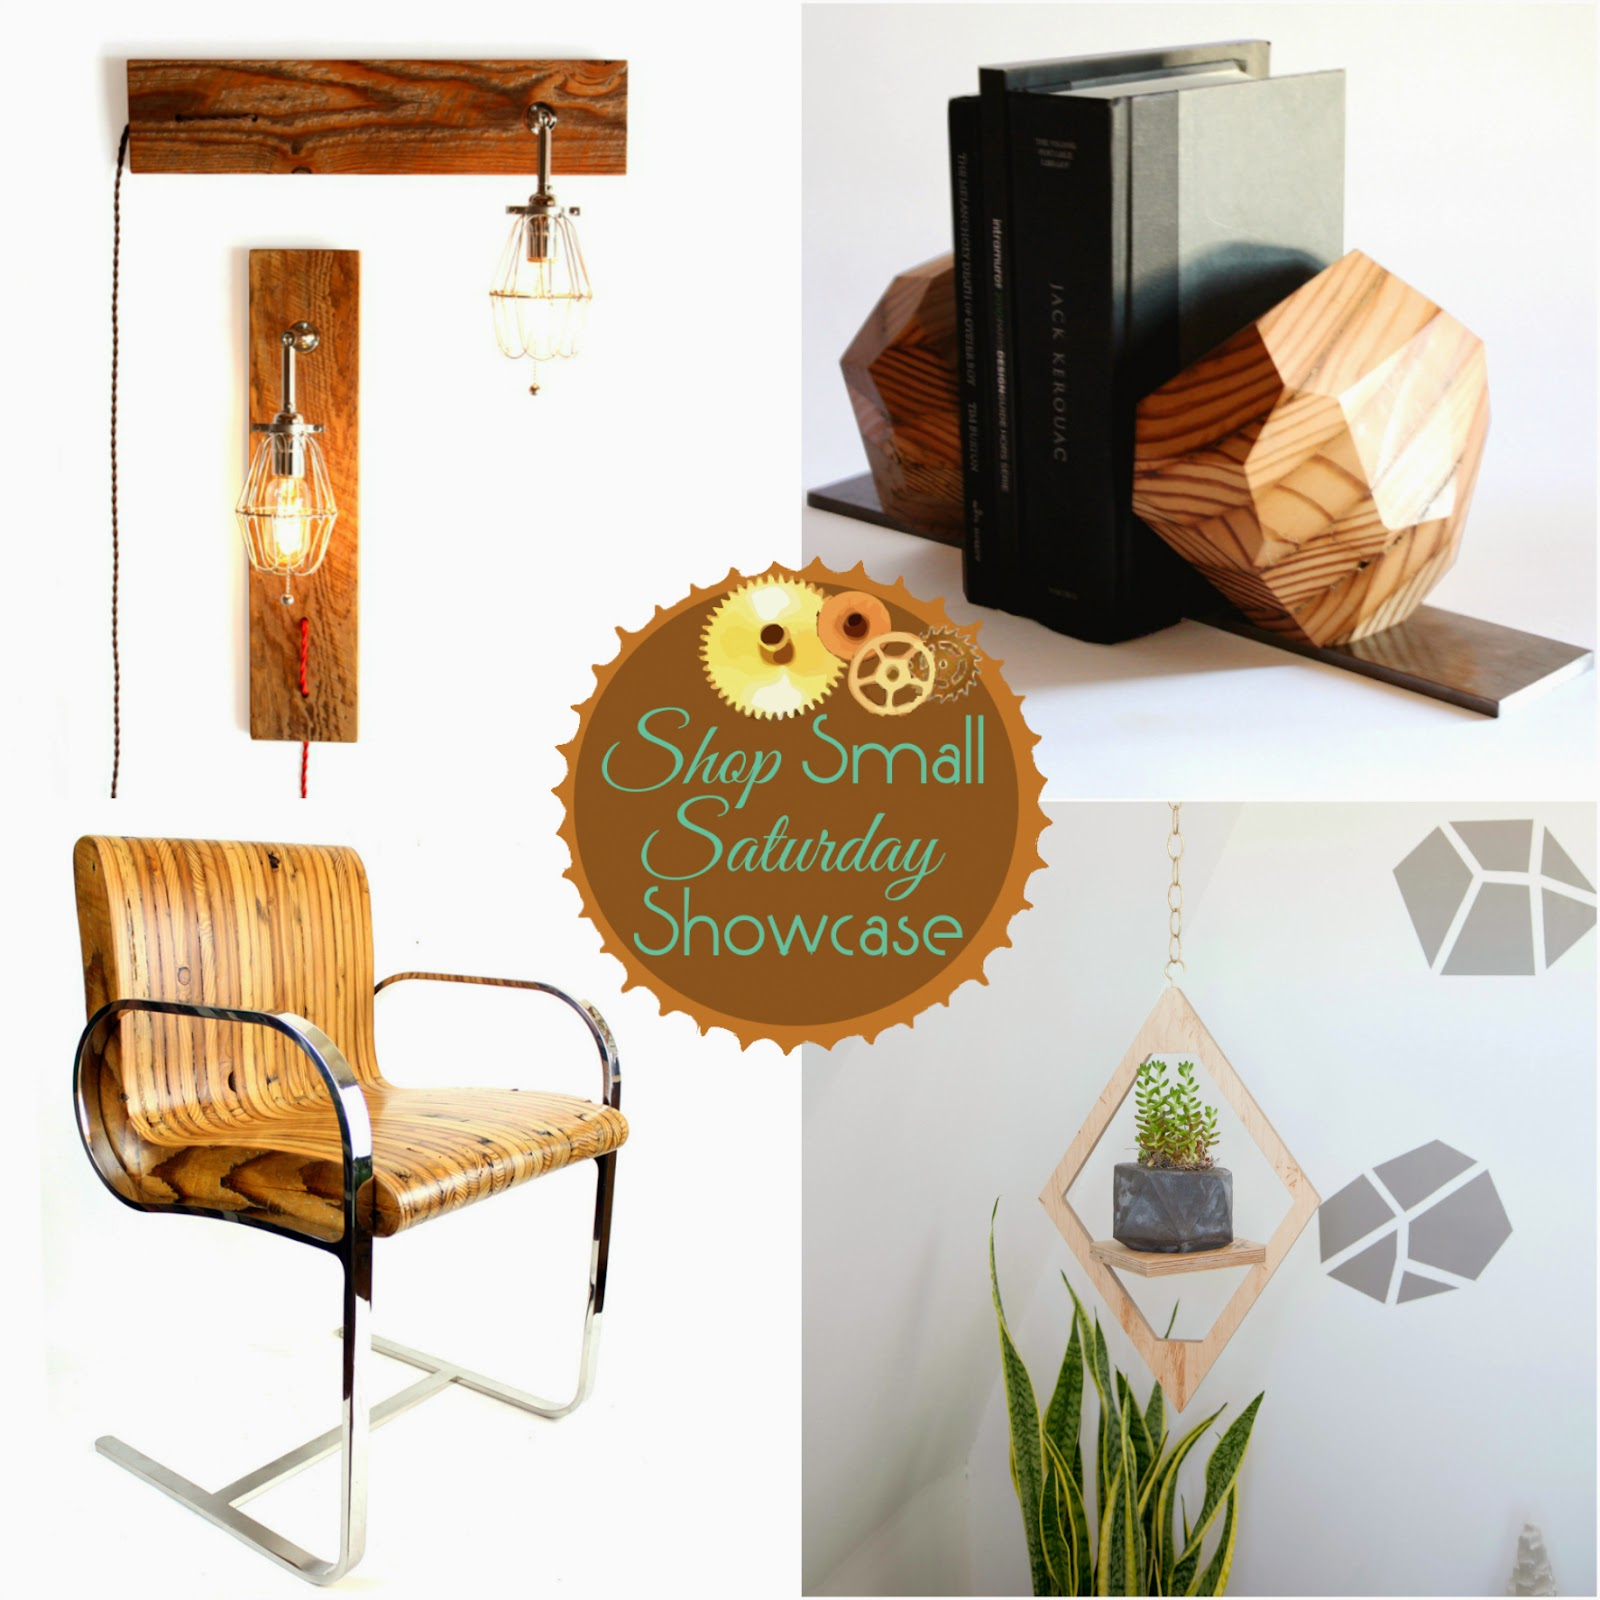 MFEO feature & Giveaway on Shop Small Saturday at Diane's Vintage Zest!  #wood #gift #unique